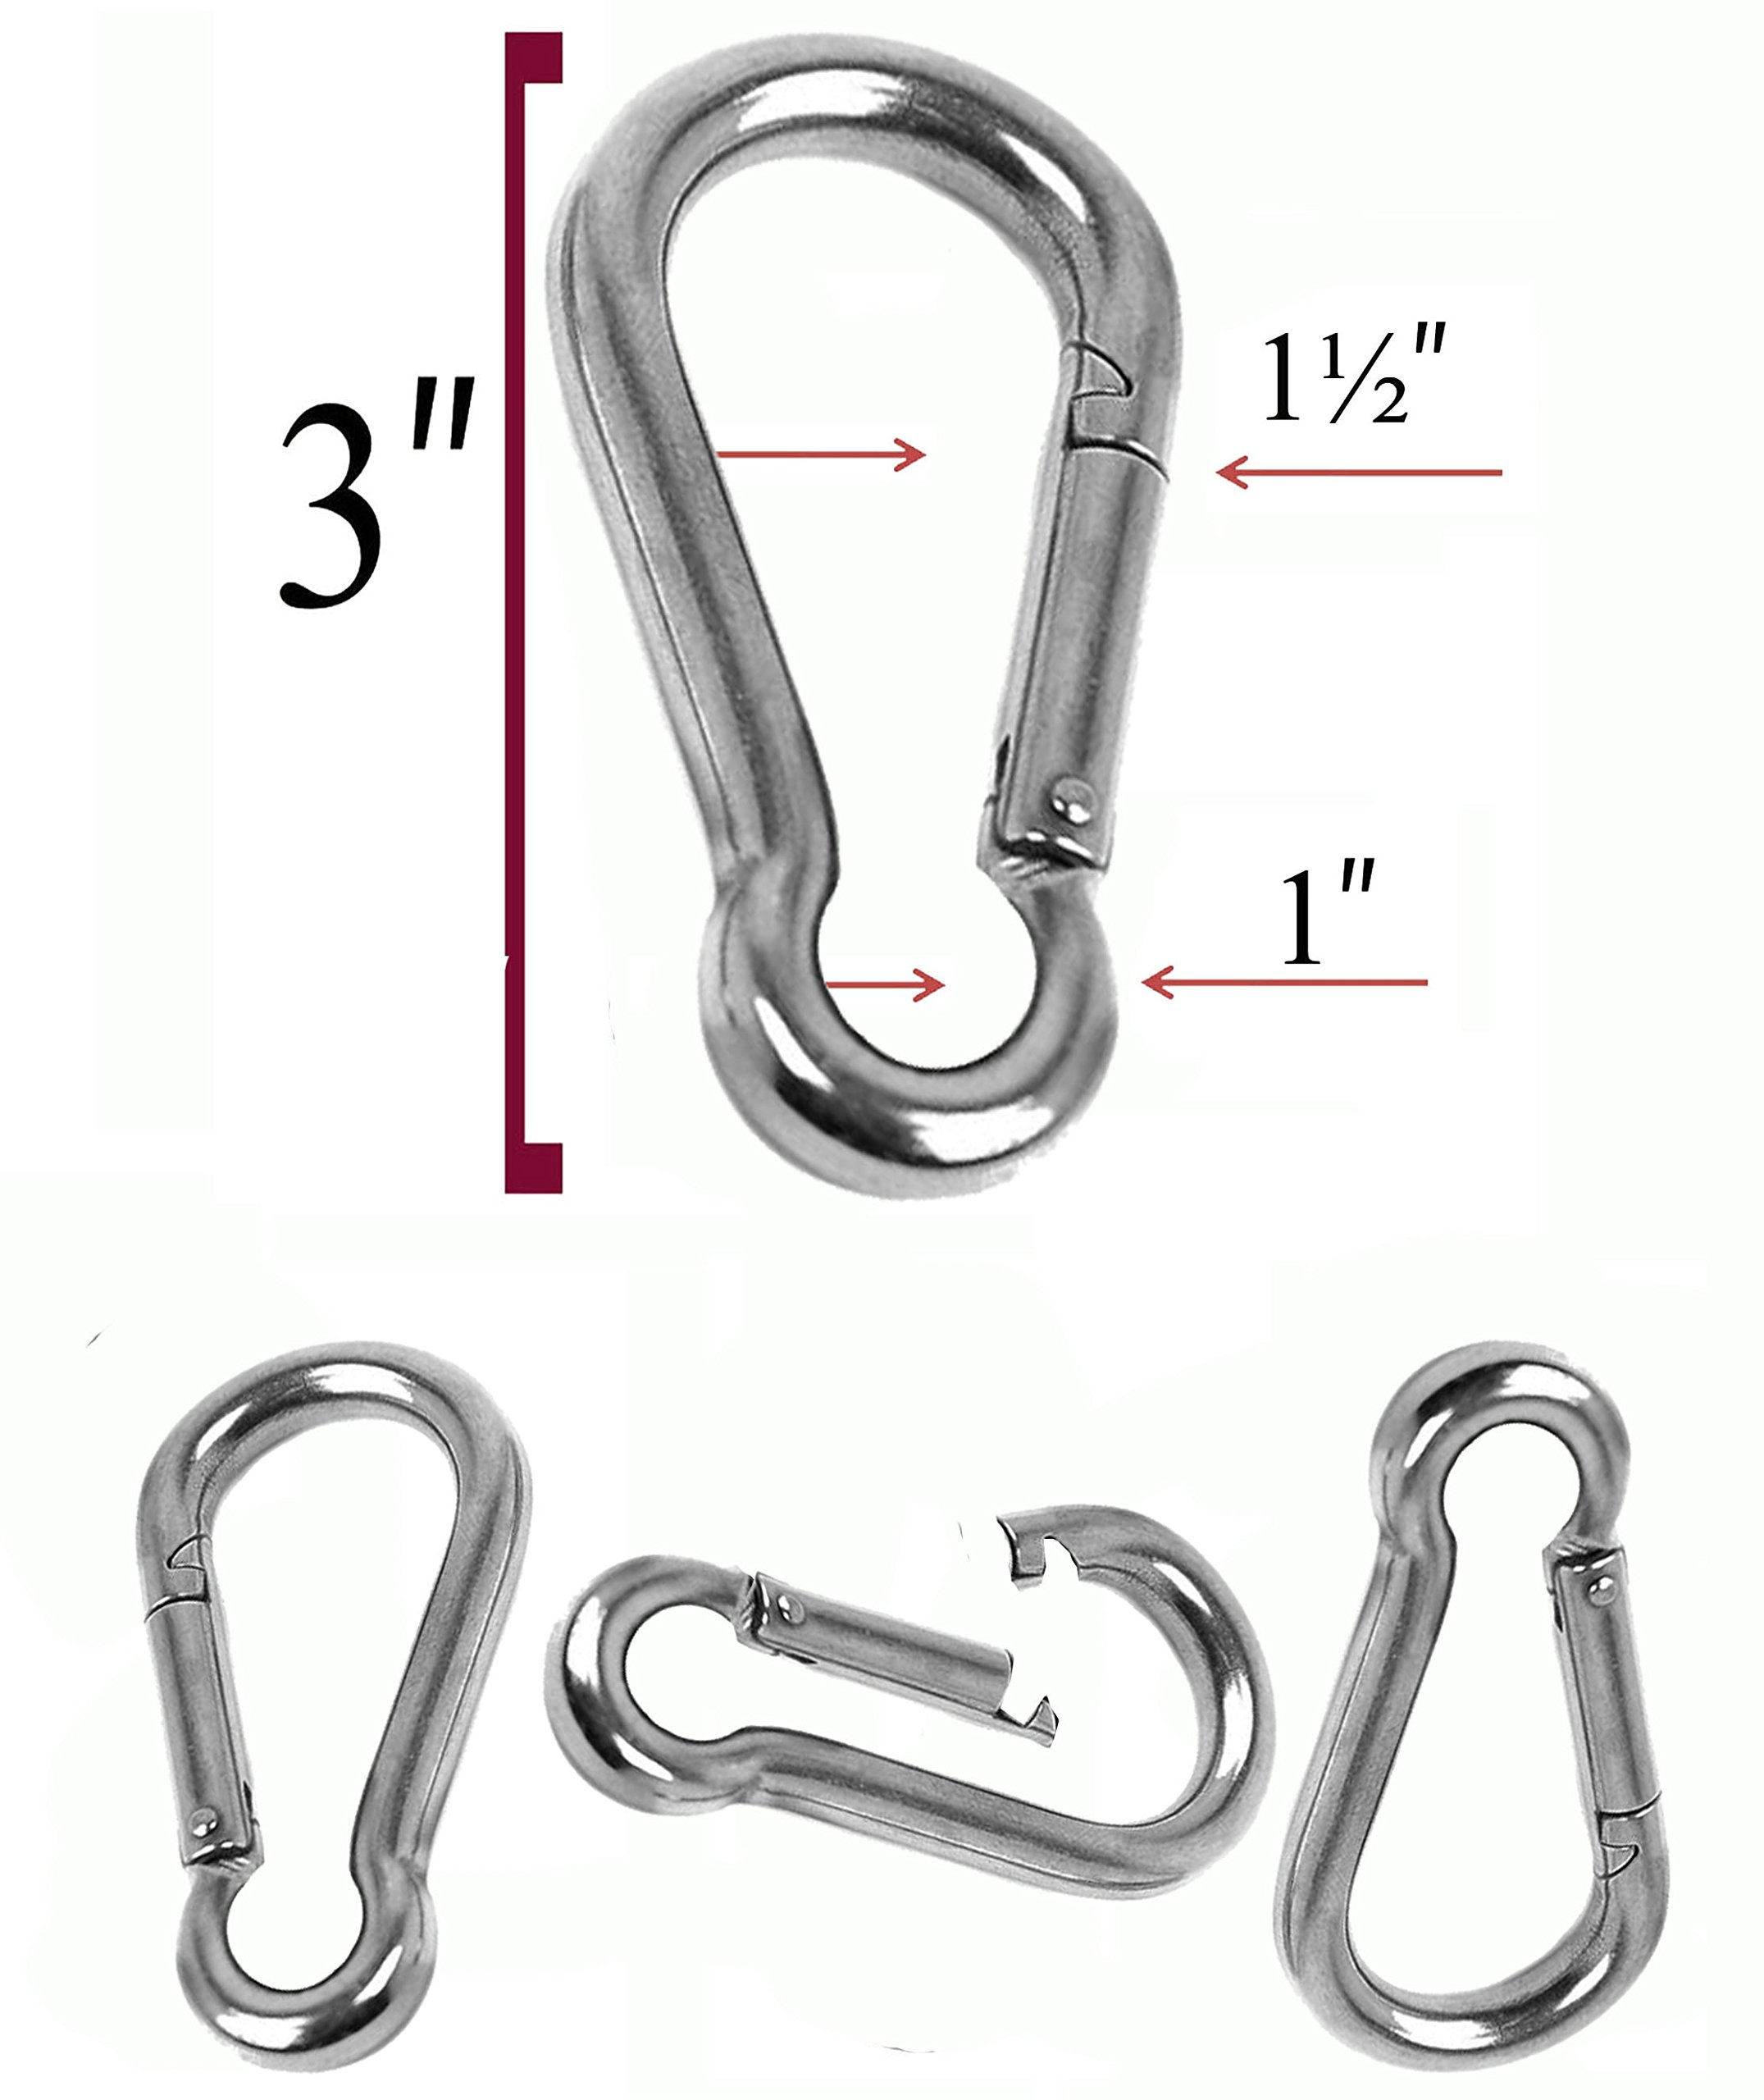 Set of 4 - 3 Inch Stainless Steel 304 Spring, Snap, Link, Hook, Clip Carabiner-Keychain, Keyring/Camping/Fishing/Traveling/Hiking/dog leash...etc.. Set of 4 (Not used for climbing)